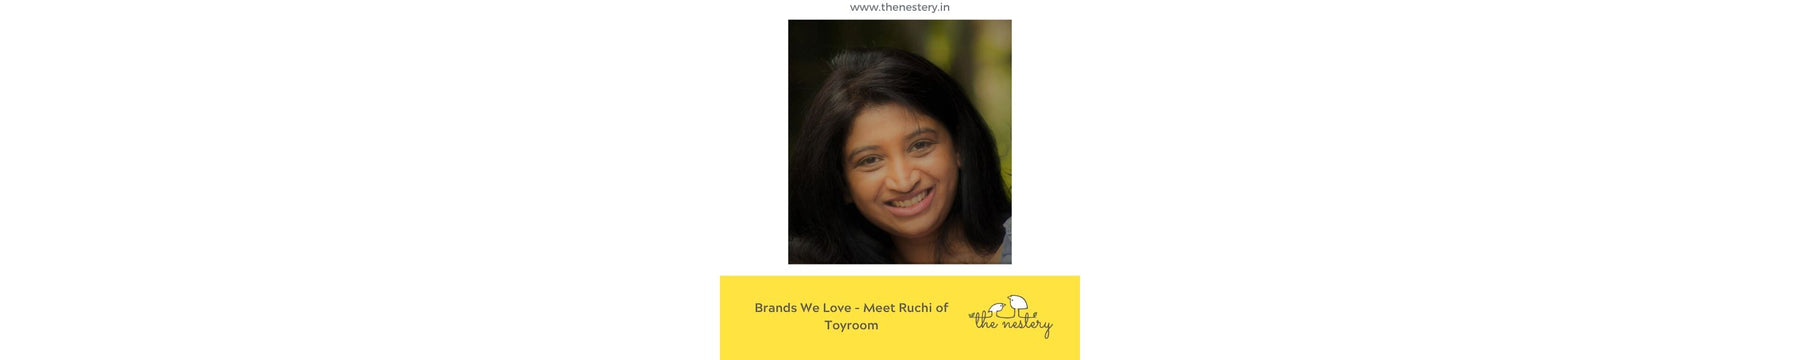 Brands We Love - Meet Ruchi of Toyroom